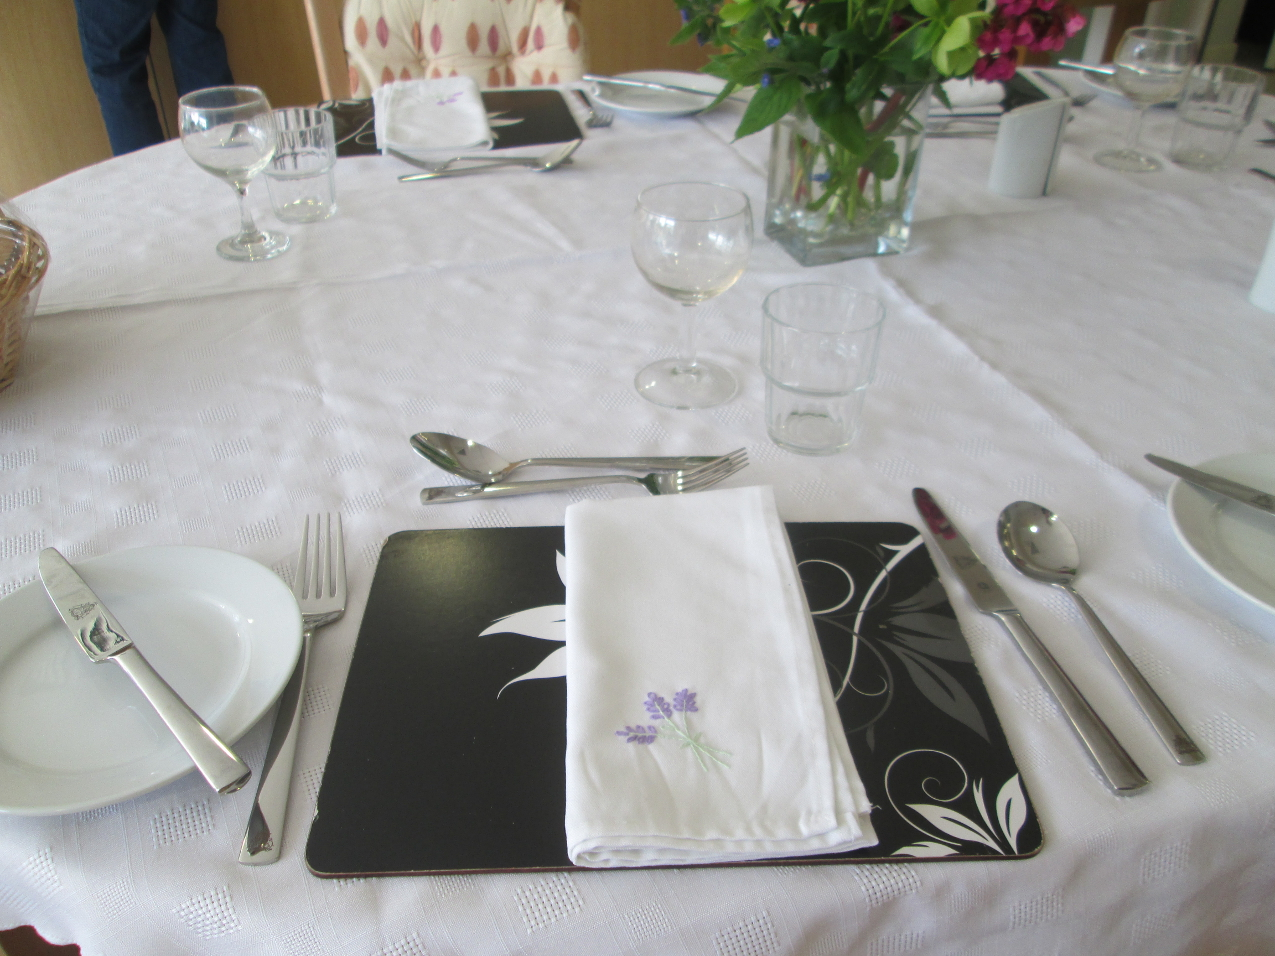 A place setting at Weston Hospice provided by the Cutlers' Company